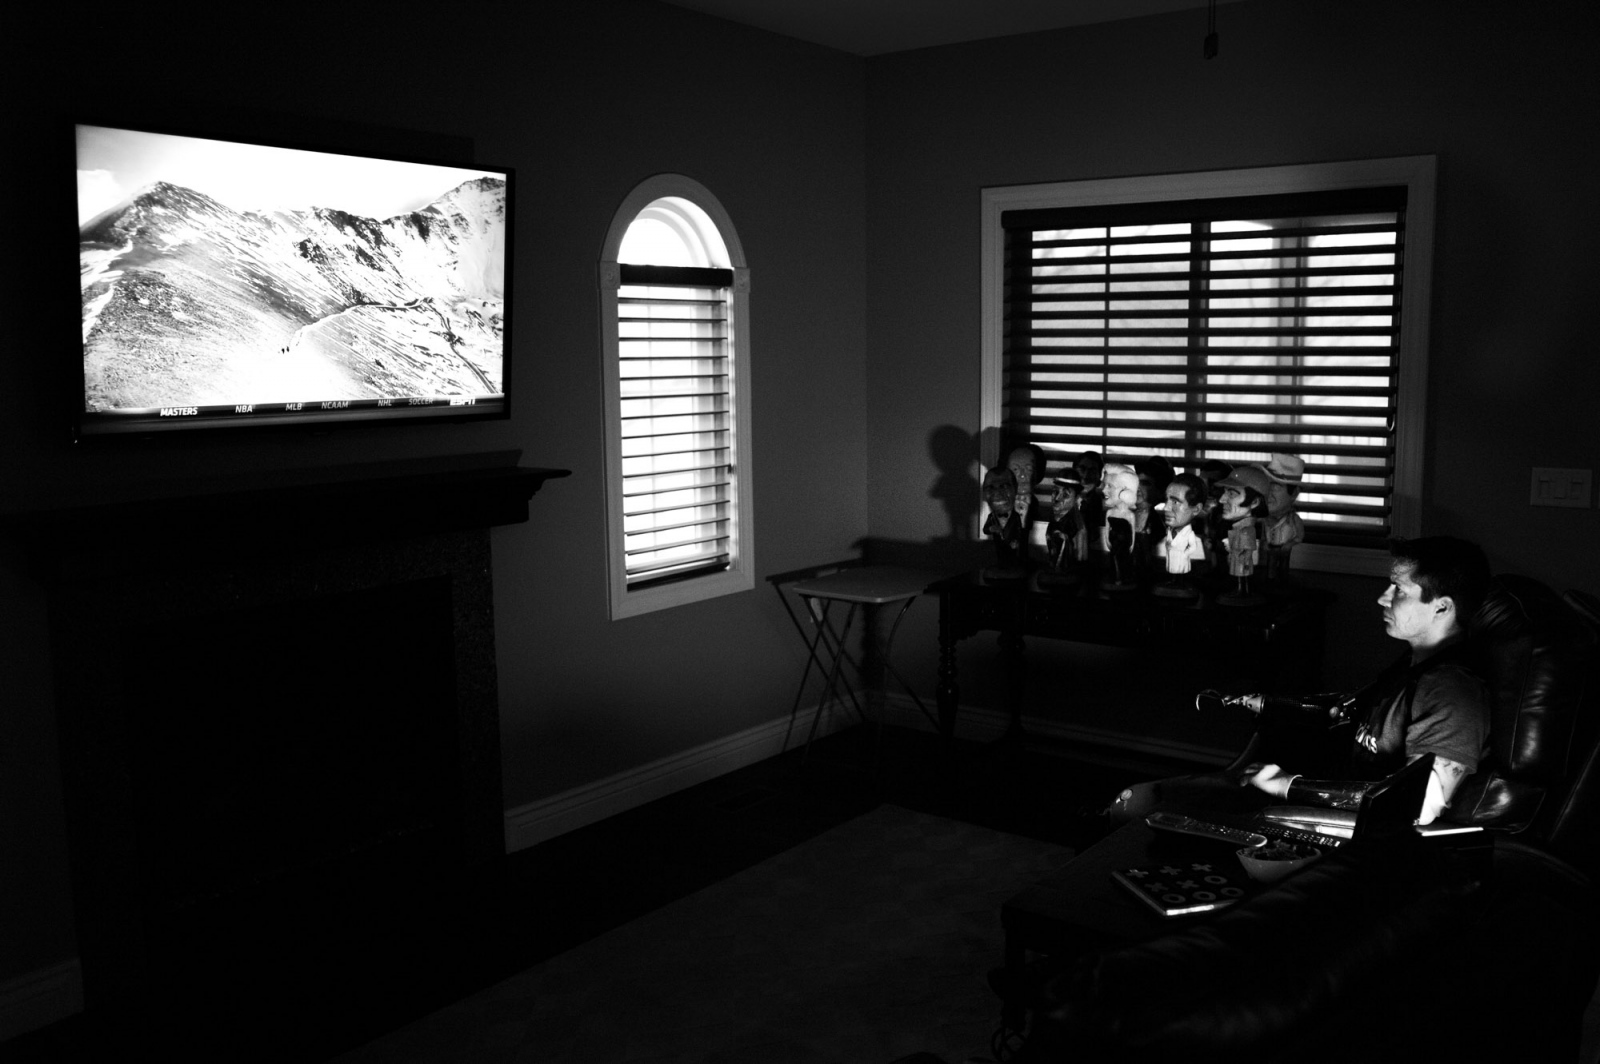 Lake Ozark, Missouri, USA. 2014. Todd Nicely watching a documentary on the TV in his living room.